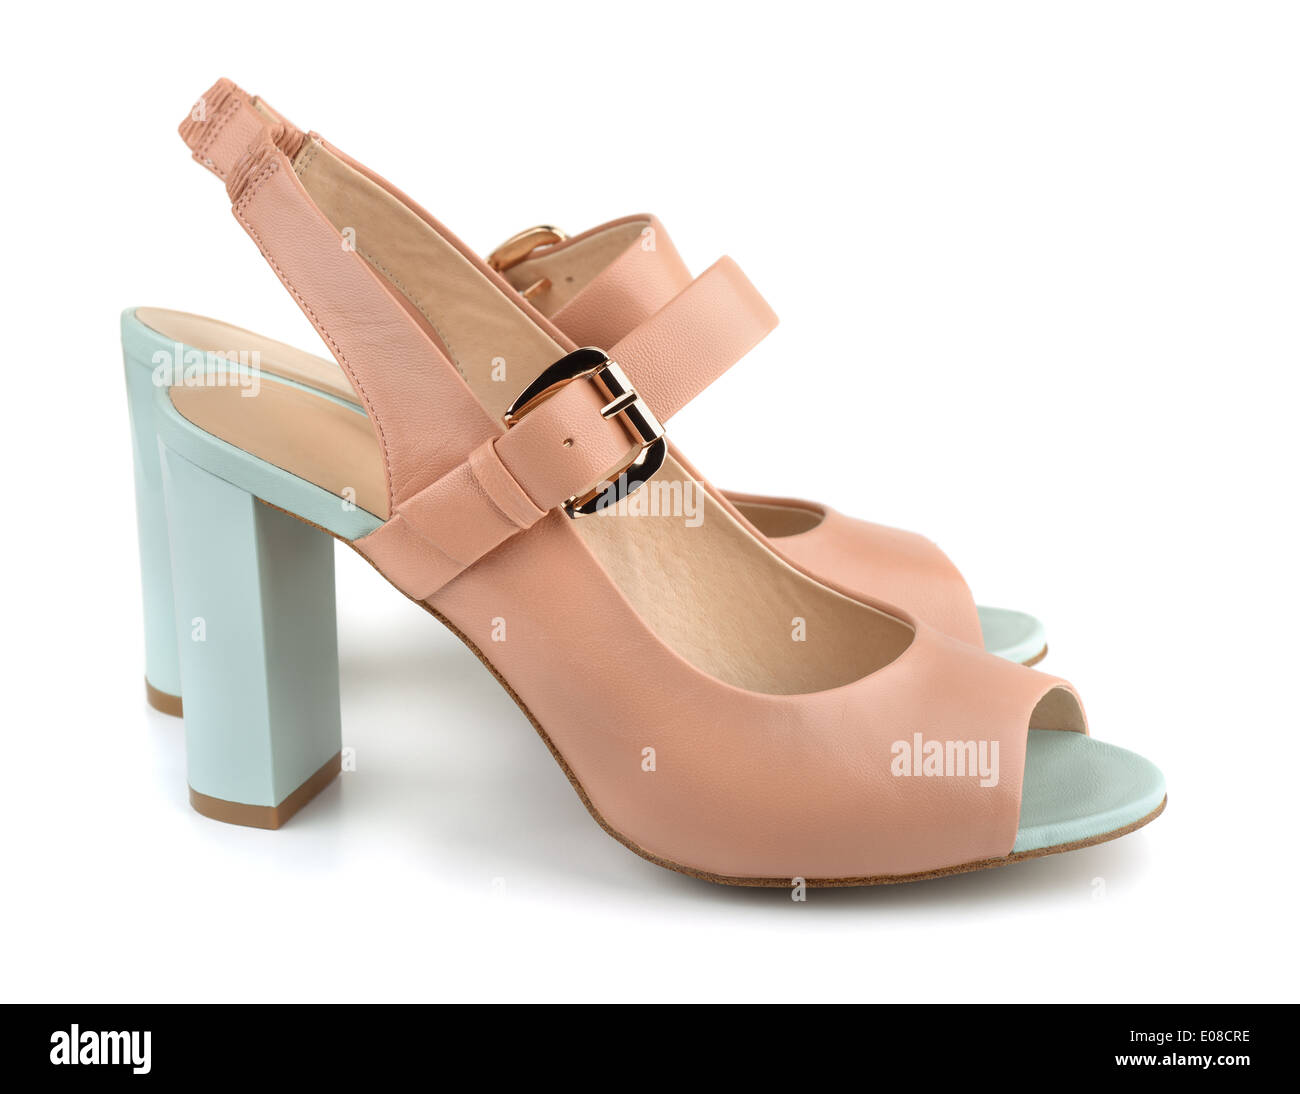 Pair of beige high heels shoes isolated on white - Stock Image